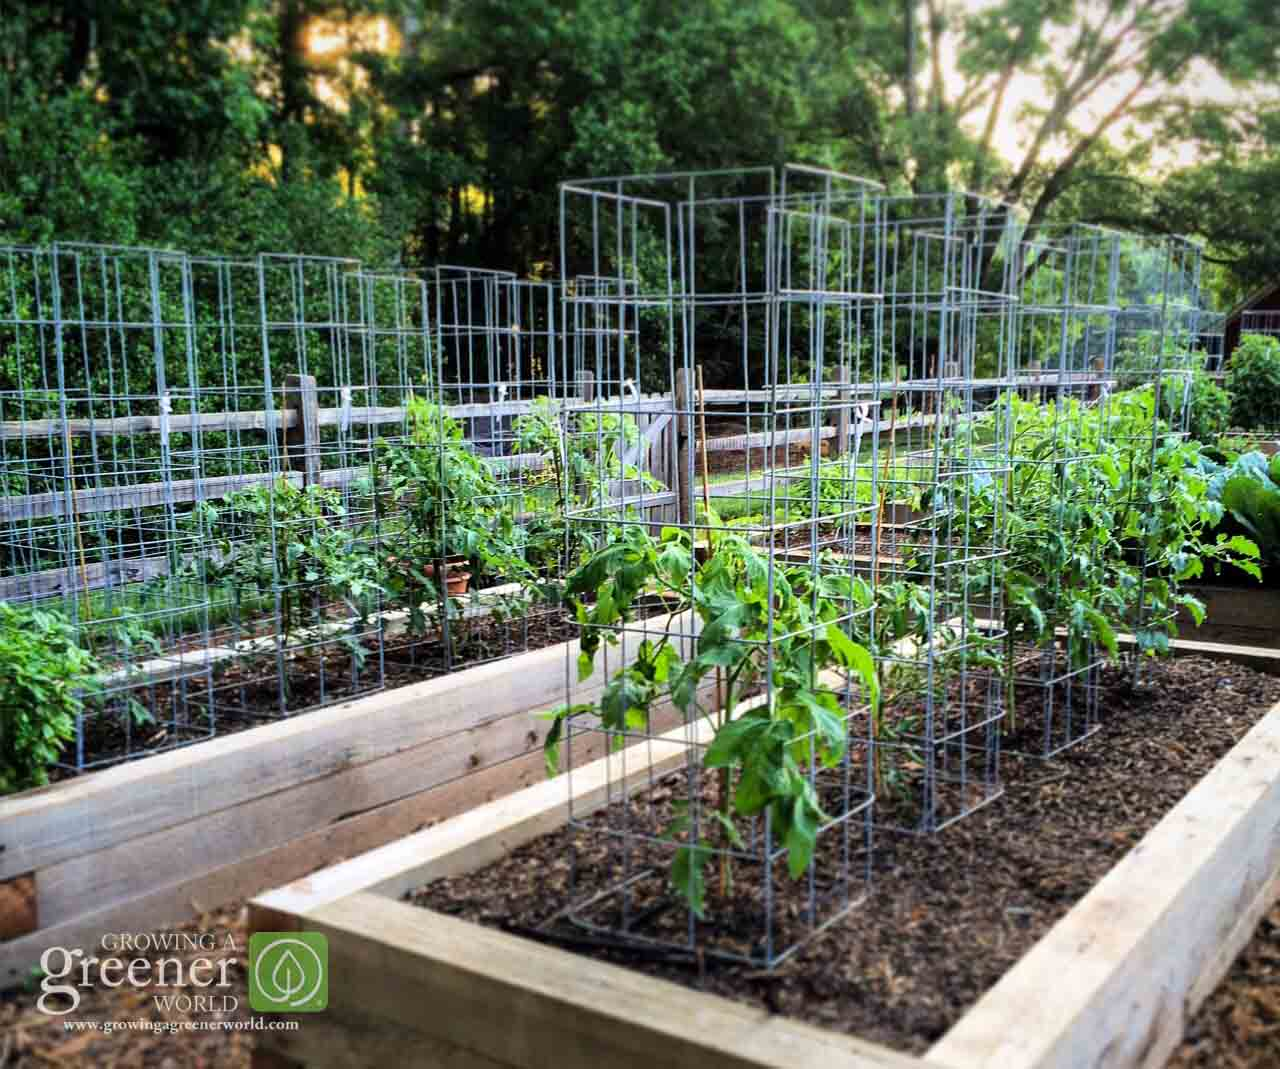 Make the Ultimate Tomato Cage - GrowingAGreenerWorld.com